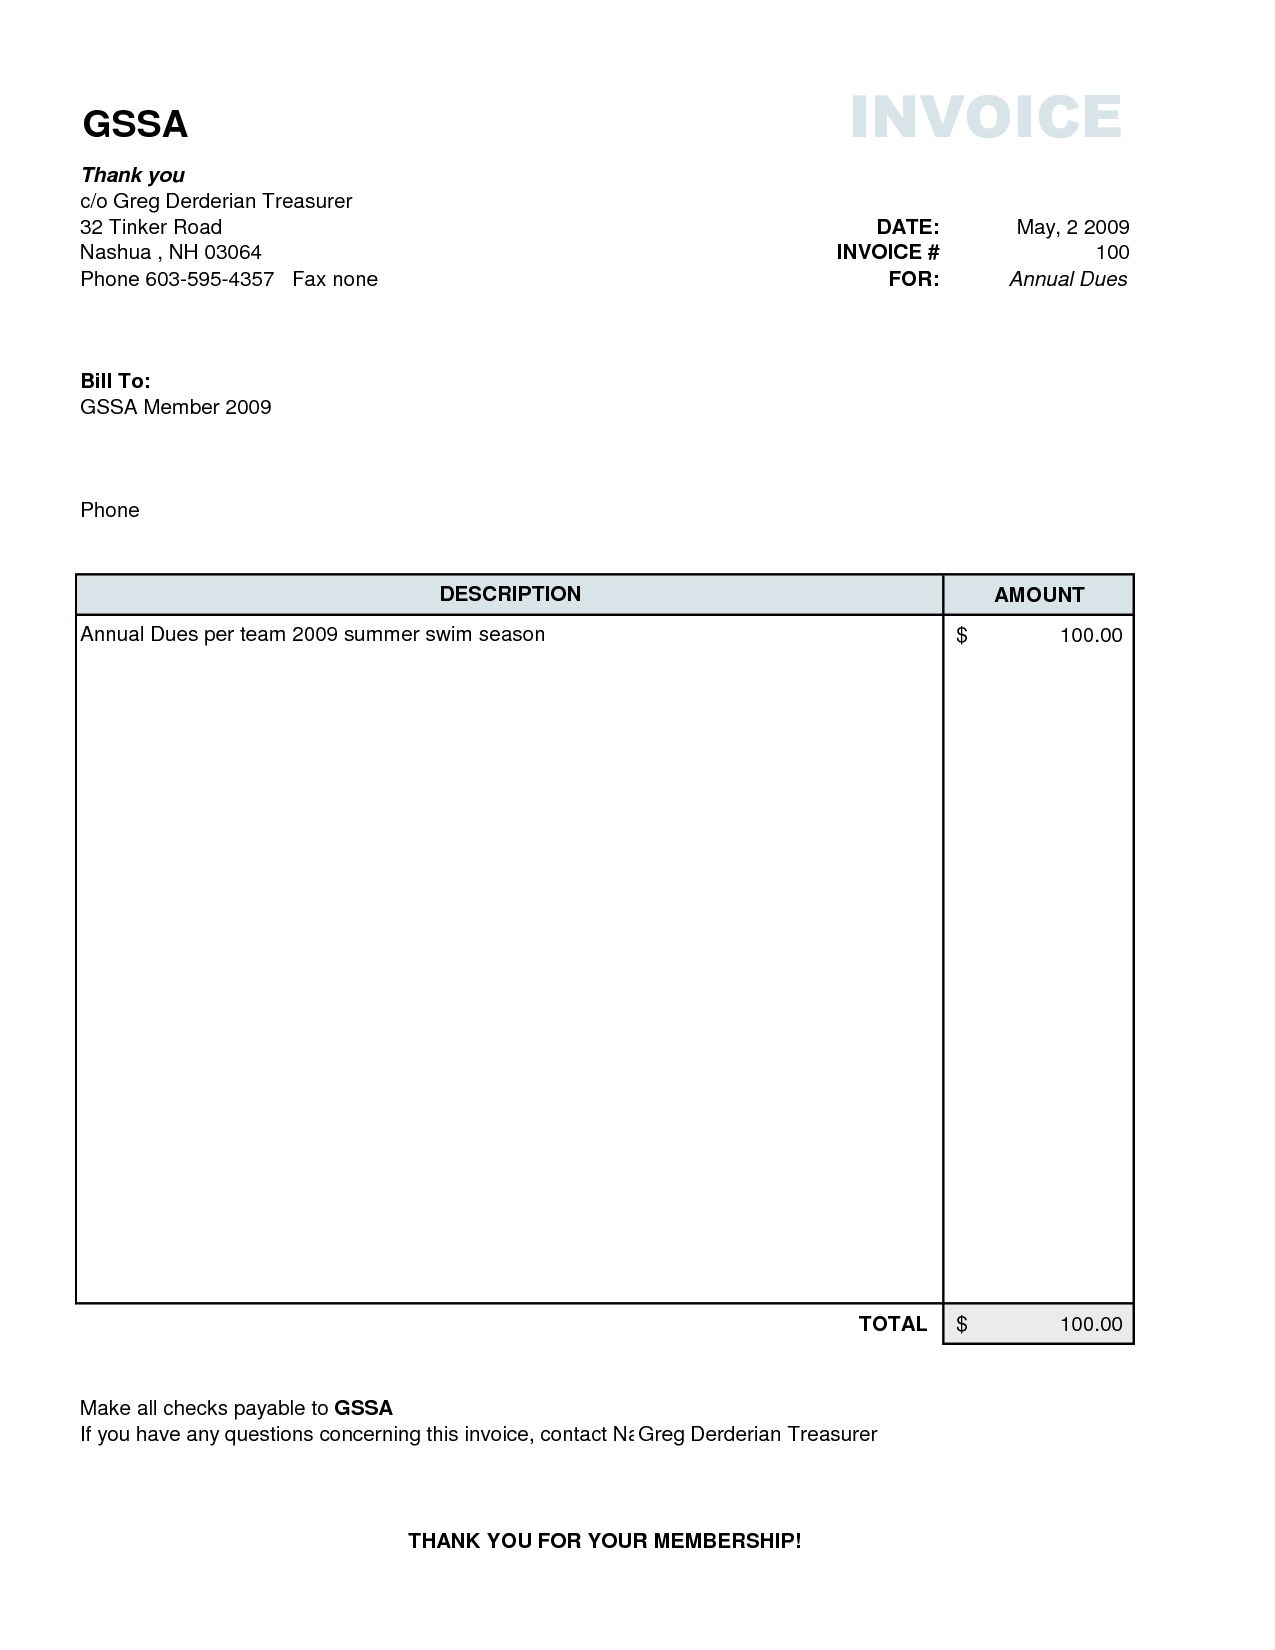 Simple Invoice Template Word Office Back Simple Invoice Form Pertaining To Microsoft Office Word Invoice Template